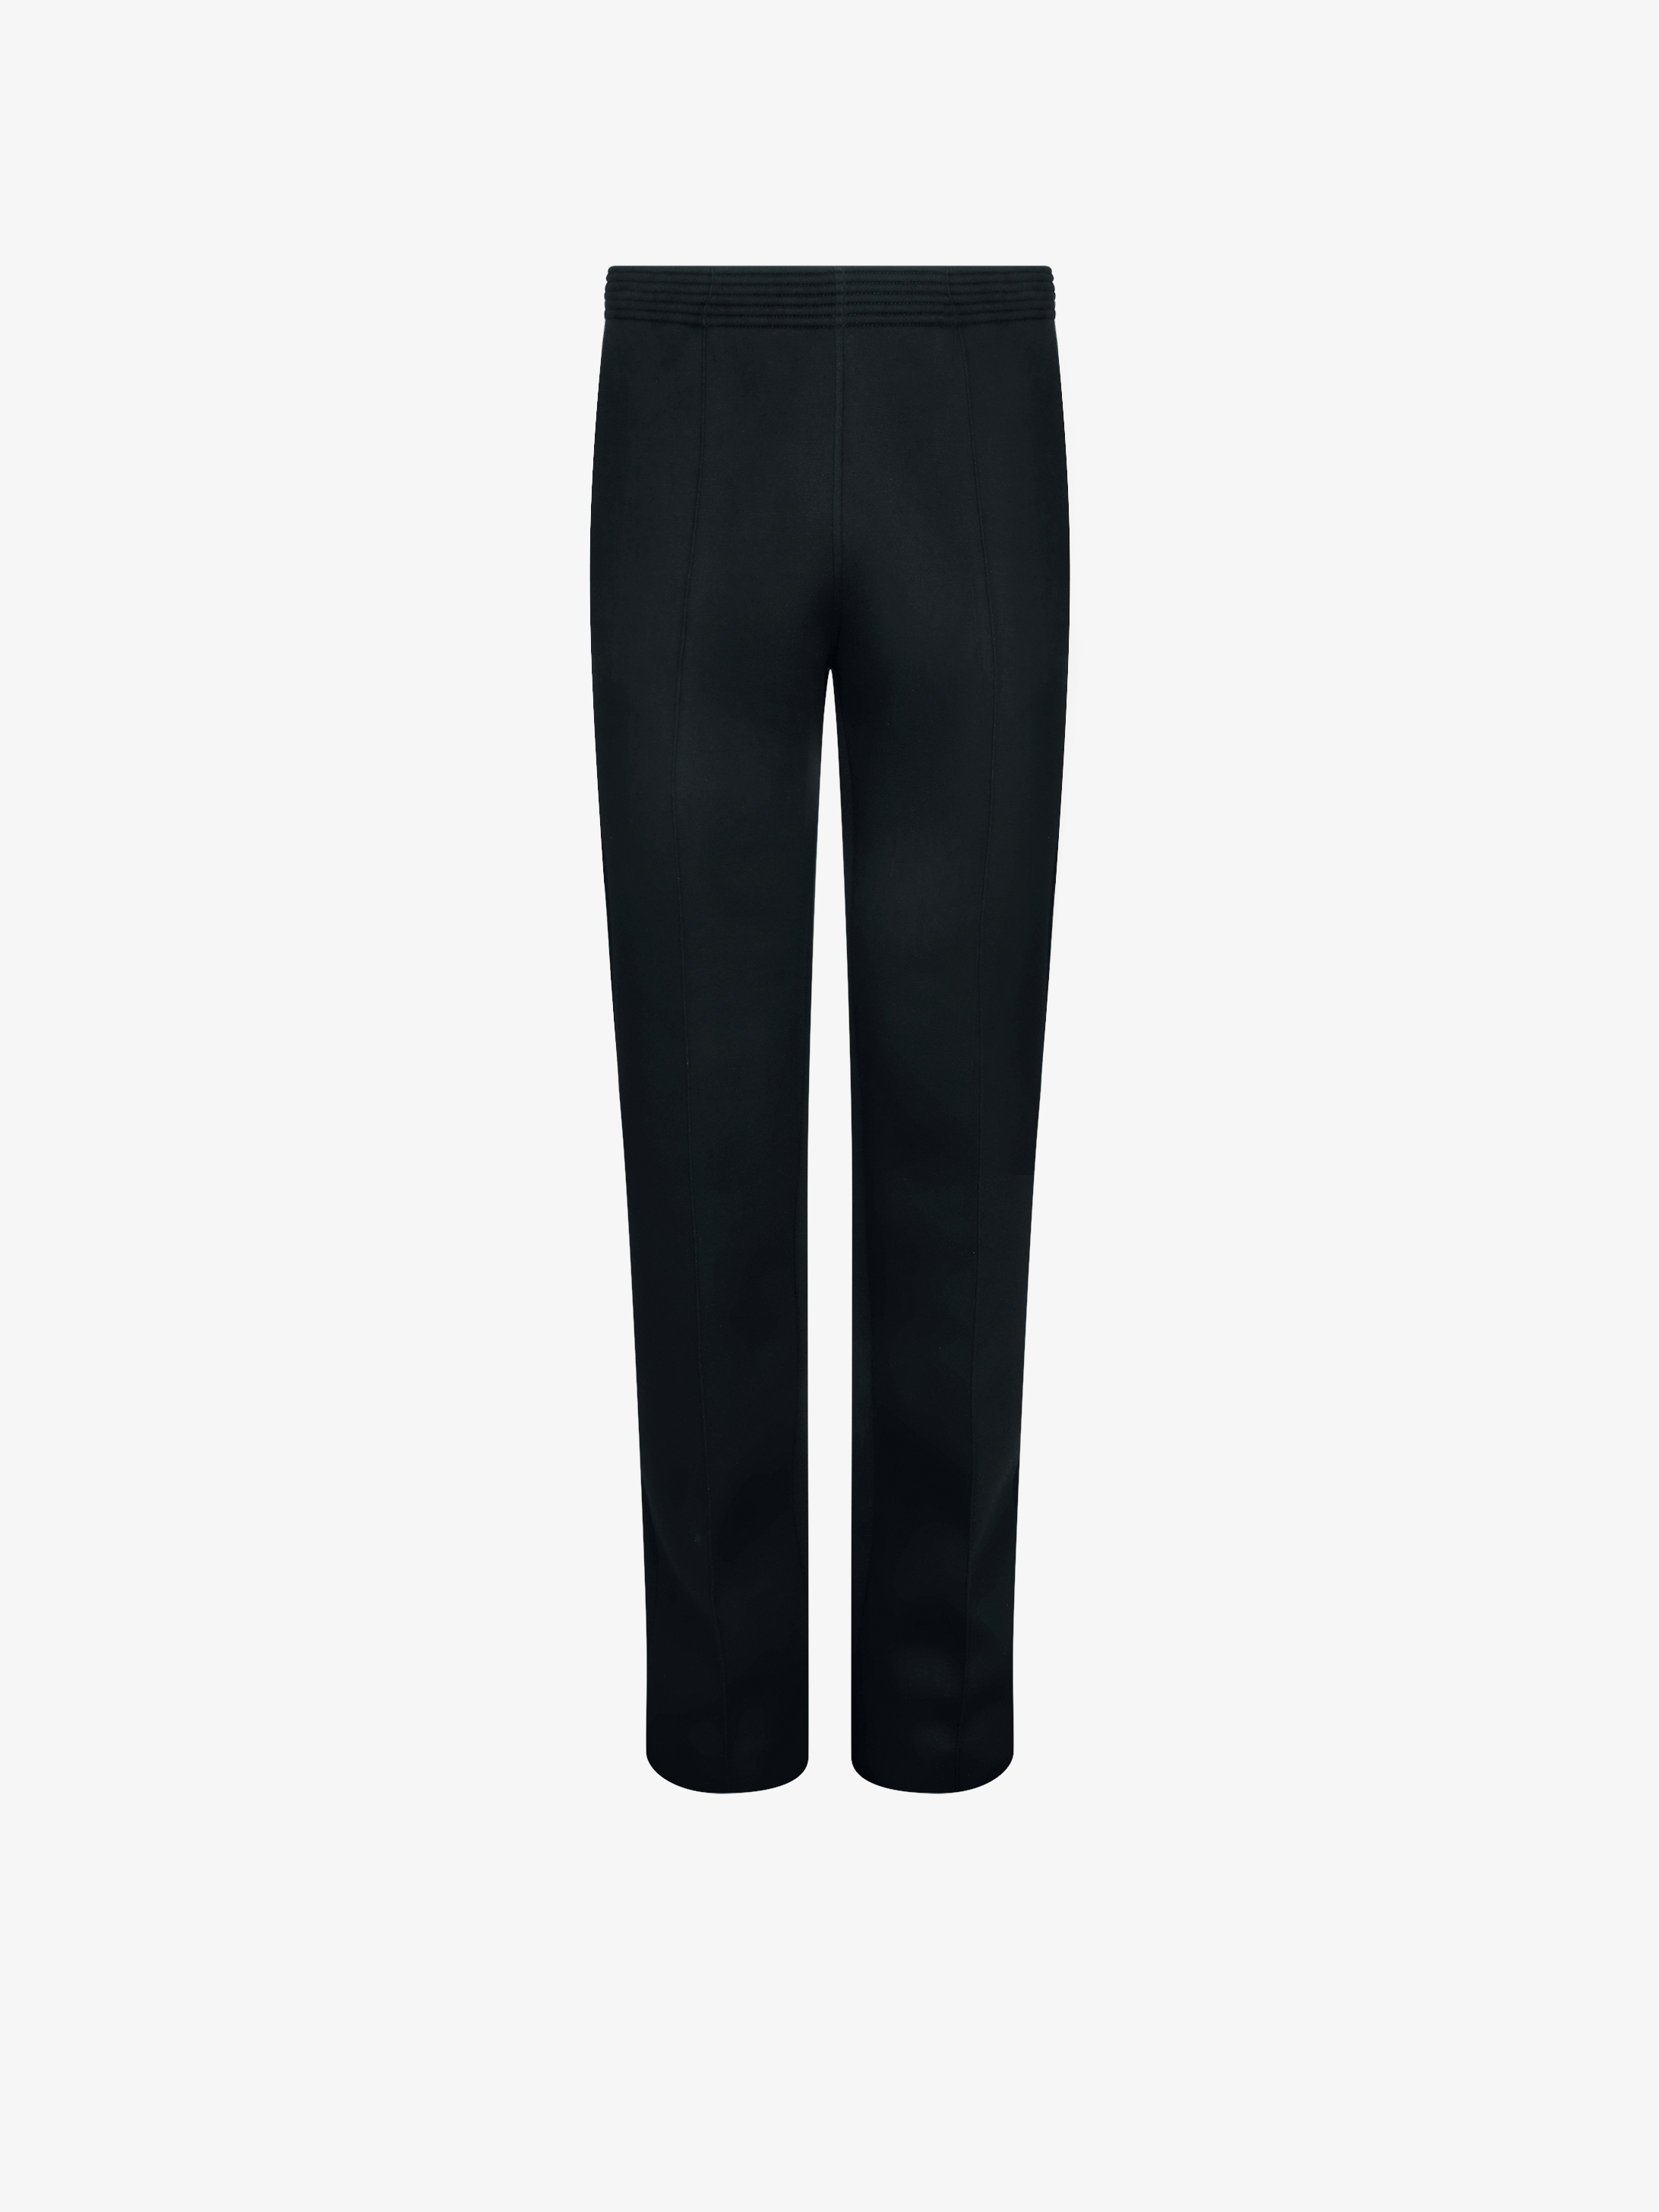 Neoprene jogging pants with GIVENCHY PATCH